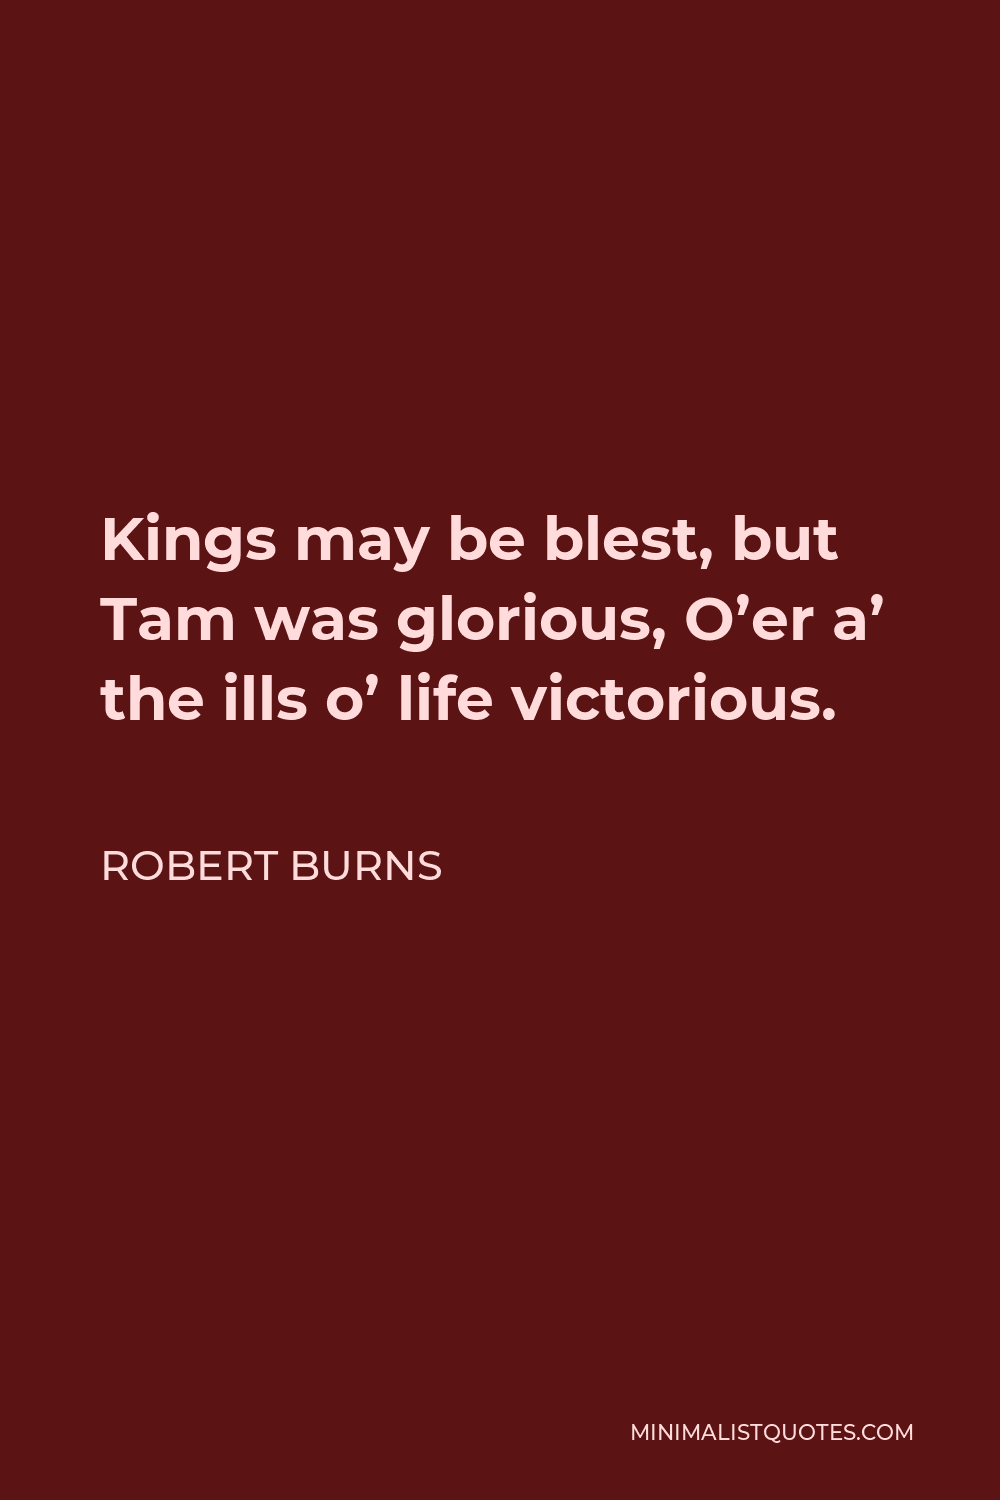 Robert Burns Quote - Kings may be blest, but Tam was glorious, O'er a' the ills o' life victorious.